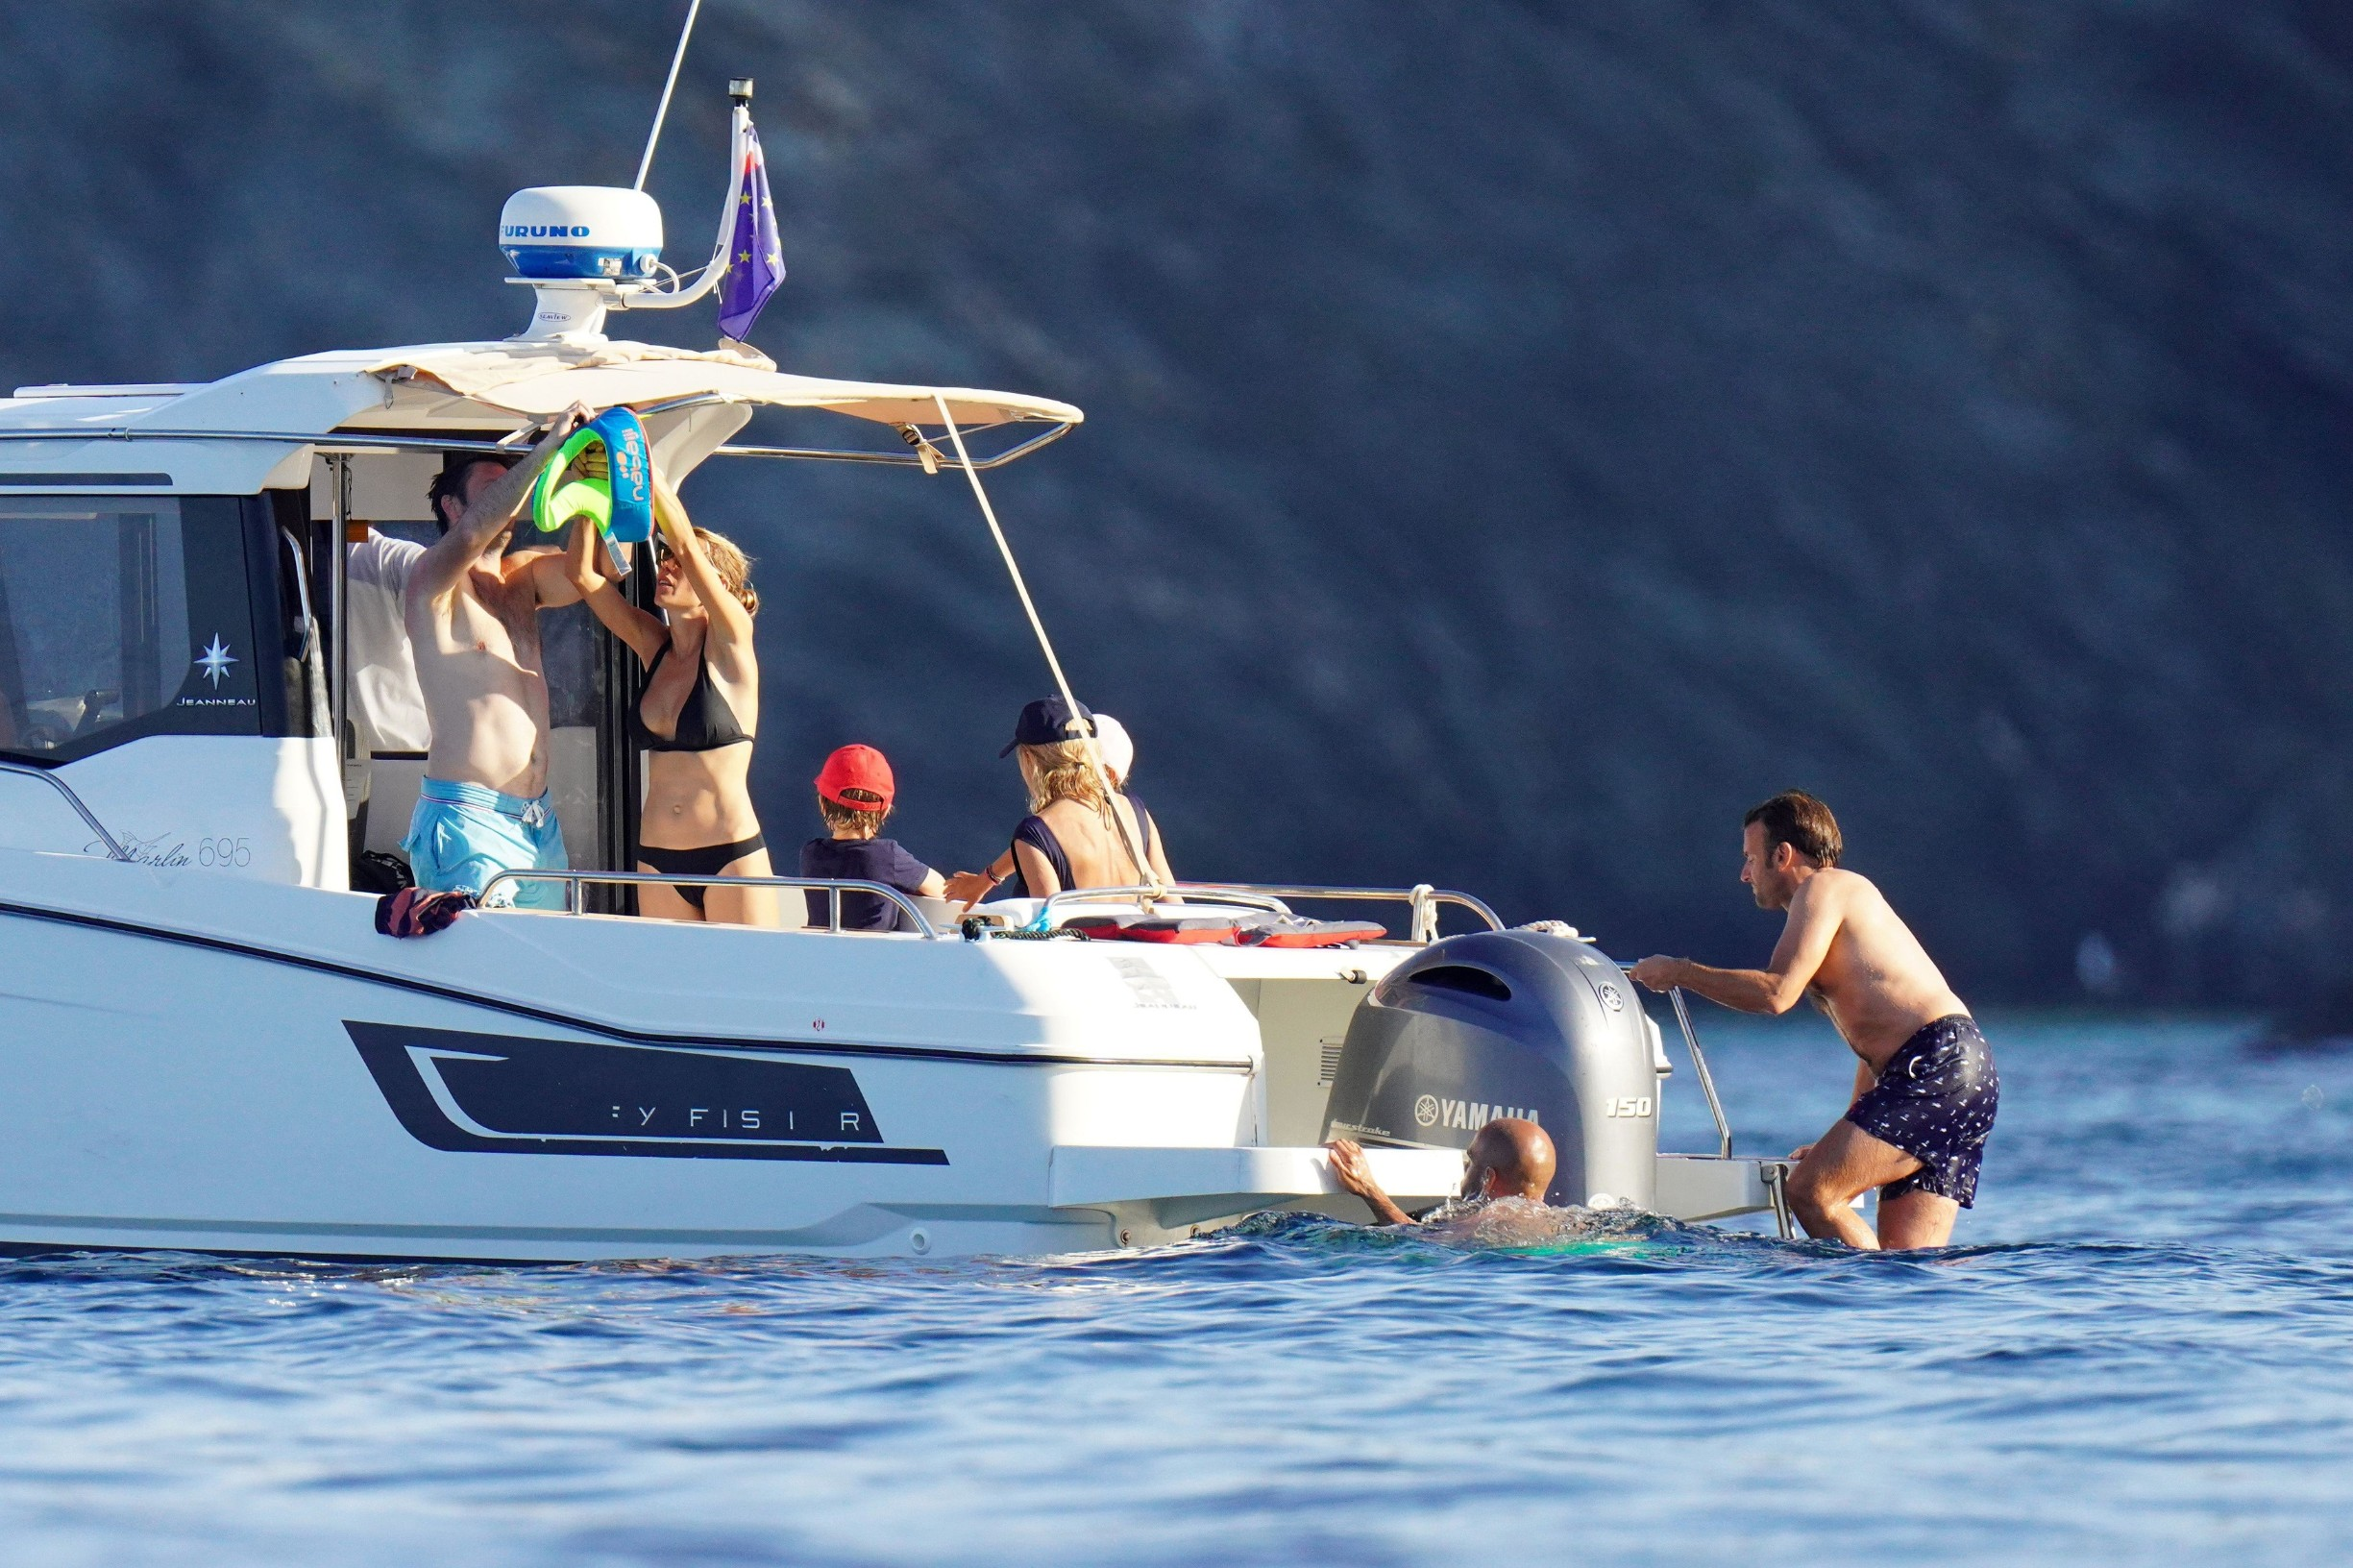 PREMIUM EXCLUSIVE - STRICTLY NO WEB NO BLOG BEFORE THURSDAY 13TH AUGUST 2020 -  French president Emmanuel Macron and wife Brigitte seen enjoying their holiday with their family during a boat day at Porquerolles island in South of France. 01 Aug 2020  The First Lady looks more sculptural than ever.,Image: 551857285, License: Rights-managed, Restrictions: ONLY Australia, Canada, Croatia, Denmark, Greece, Ireland, Israel, Japan, Lithuania, New Zealand, Norway, Poland, Portugal, Romania, Slovakia, Slovenia, South Africa, South Korea, Taiwan, Thailand, Turkey, Ukraine, United Arab Emirates, United Kingdom, United States, Model Release: no, Credit line: MEGA / The Mega Agency / Profimedia